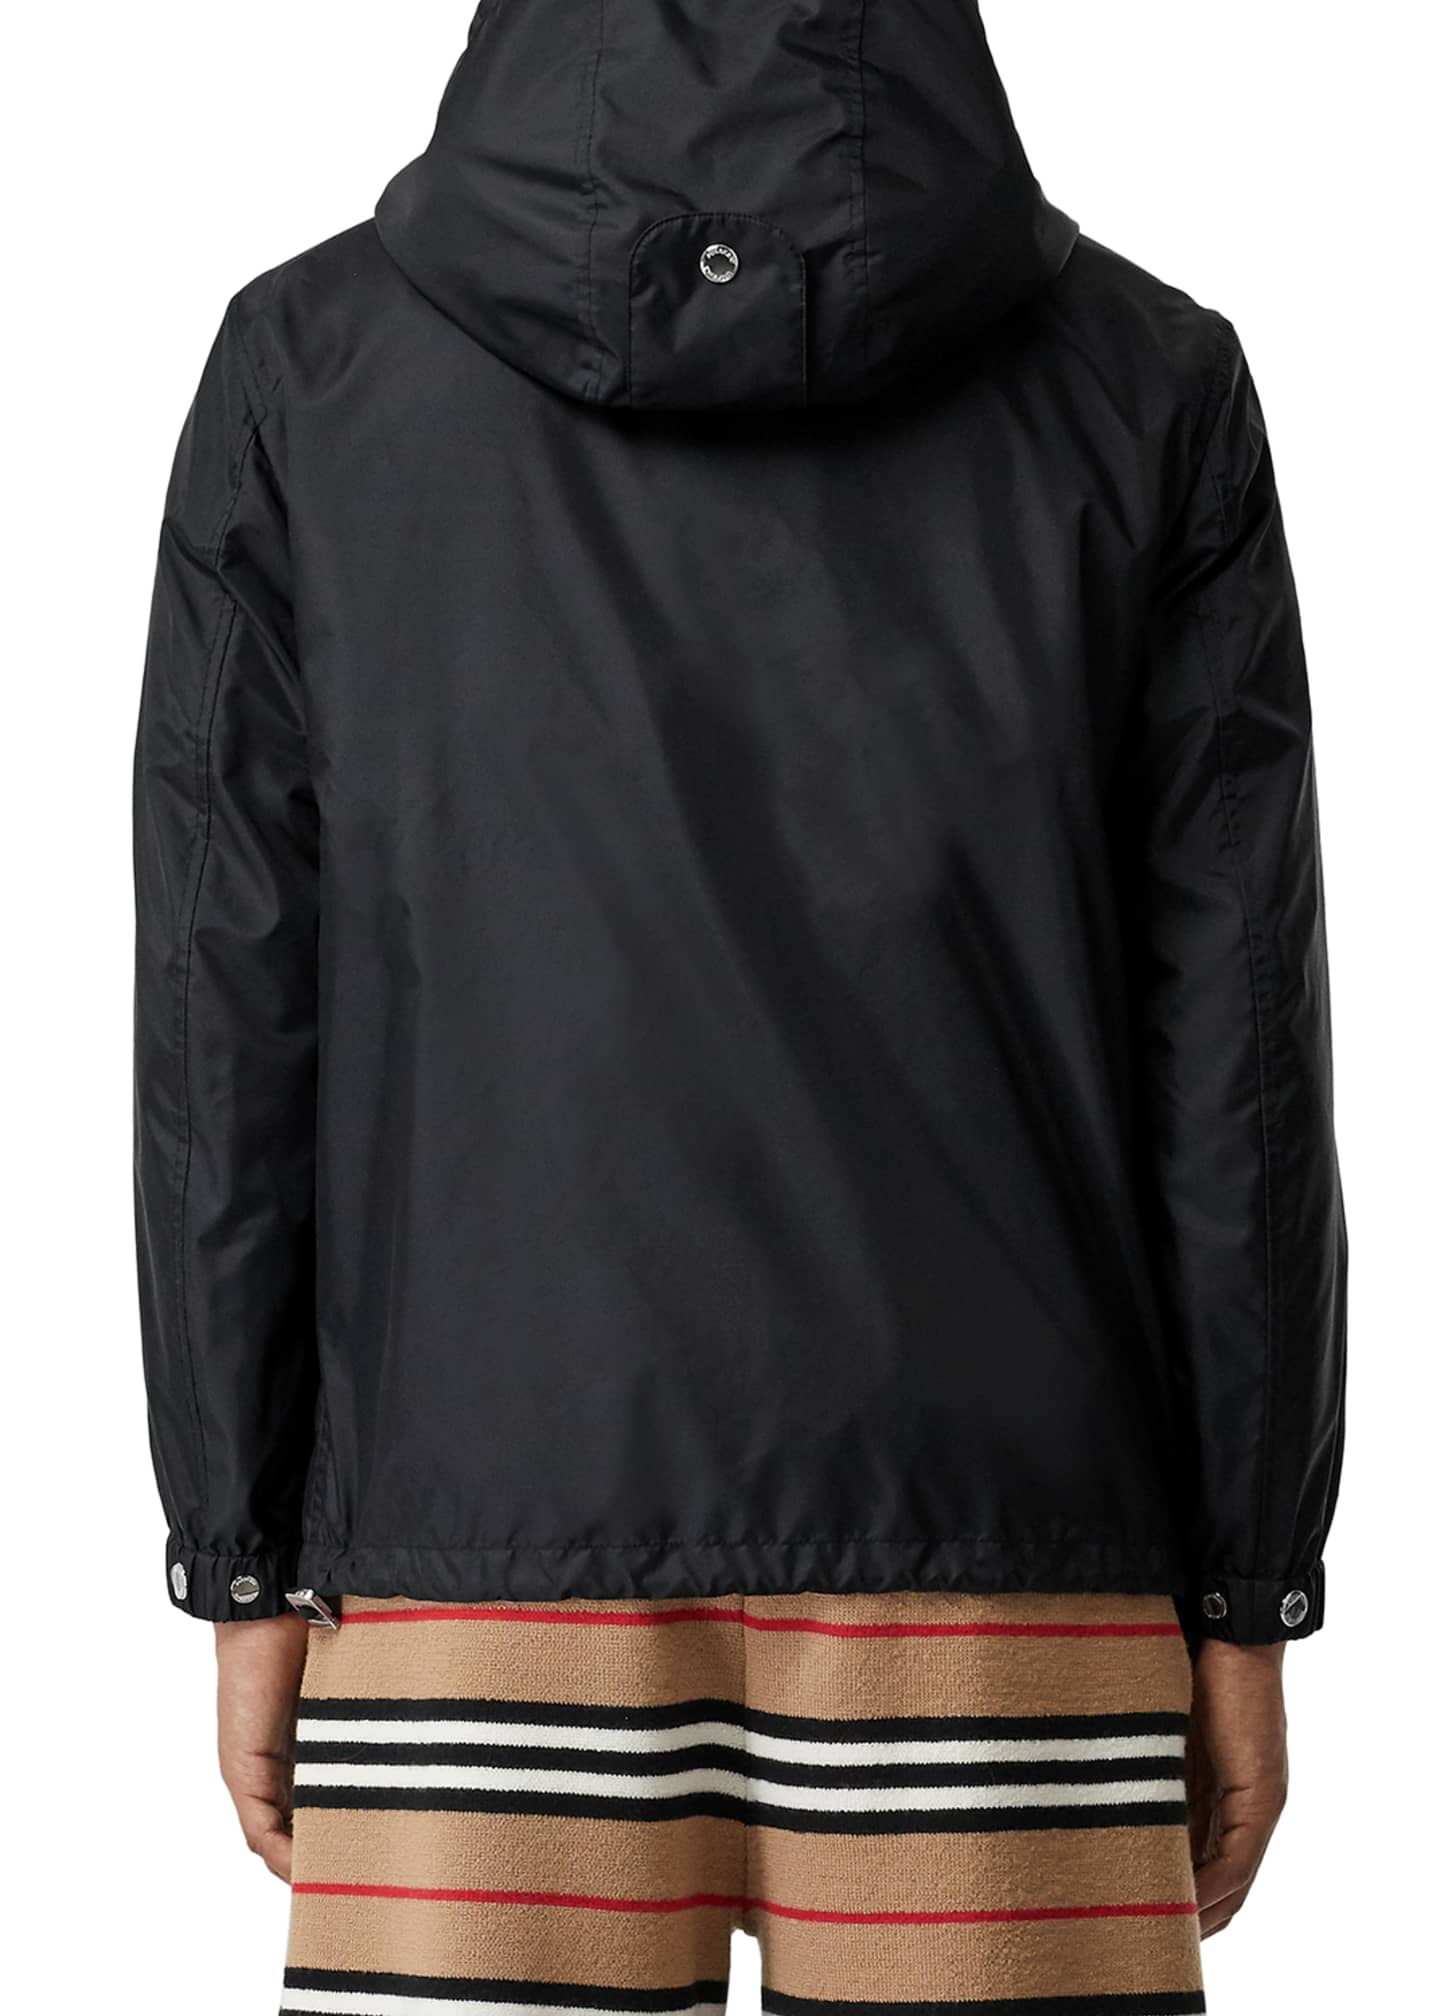 Burberry nylon jacket with check trim